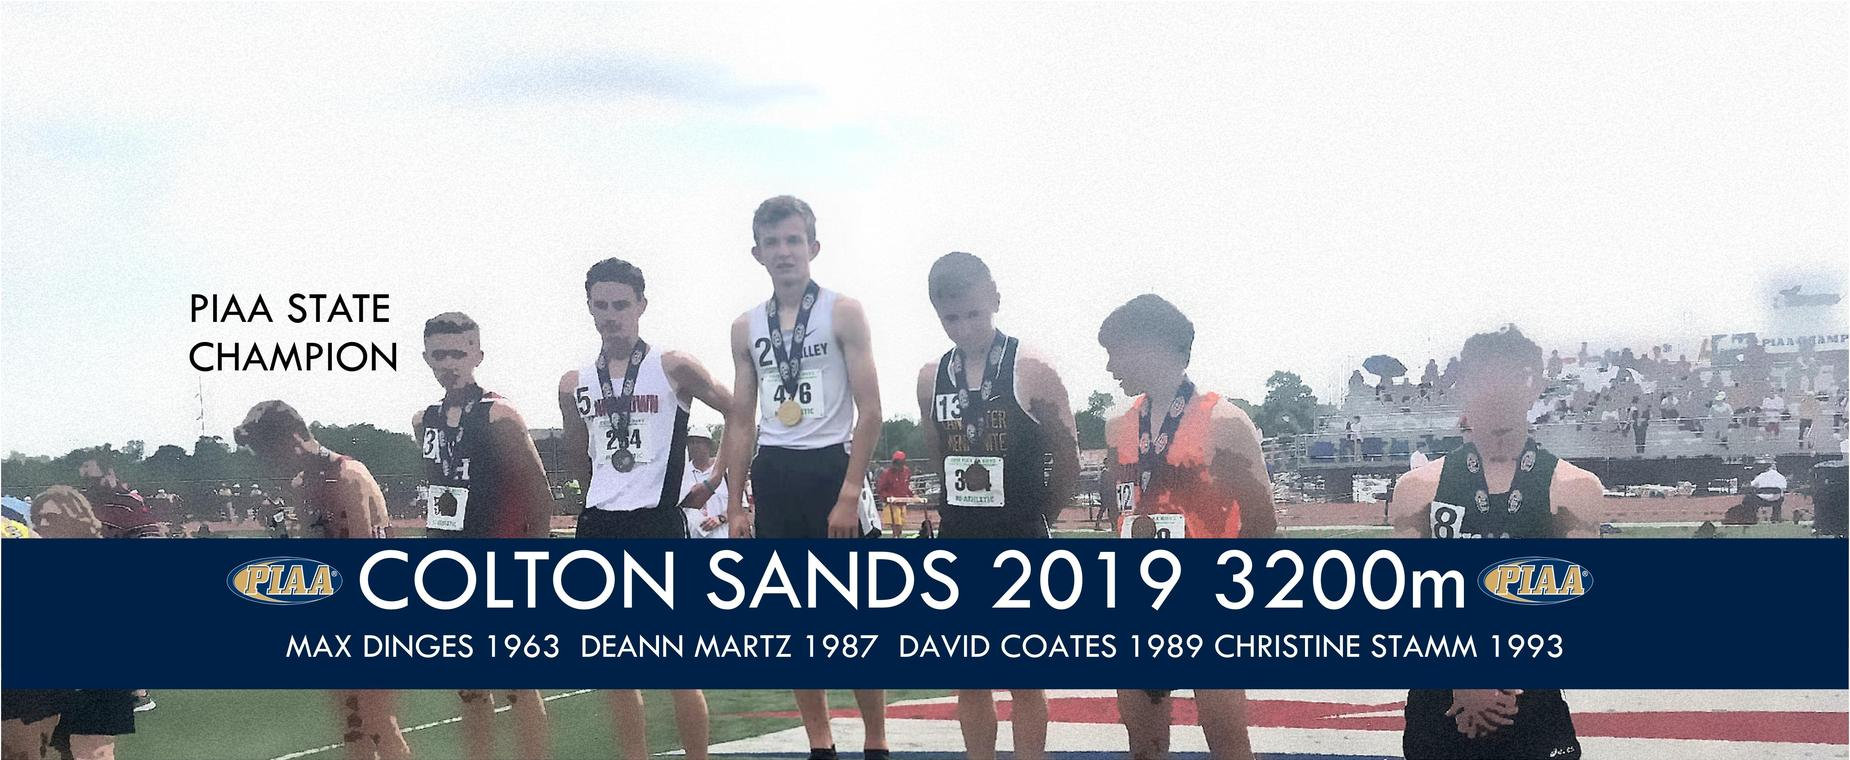 Colton Sands joins the royal company of Max Dinges (wrestling), Deann Martz (track and field 3200m), David Coates (golf), and Christine Stamm (cross country) as the only individual state champions in Penns Valley history.